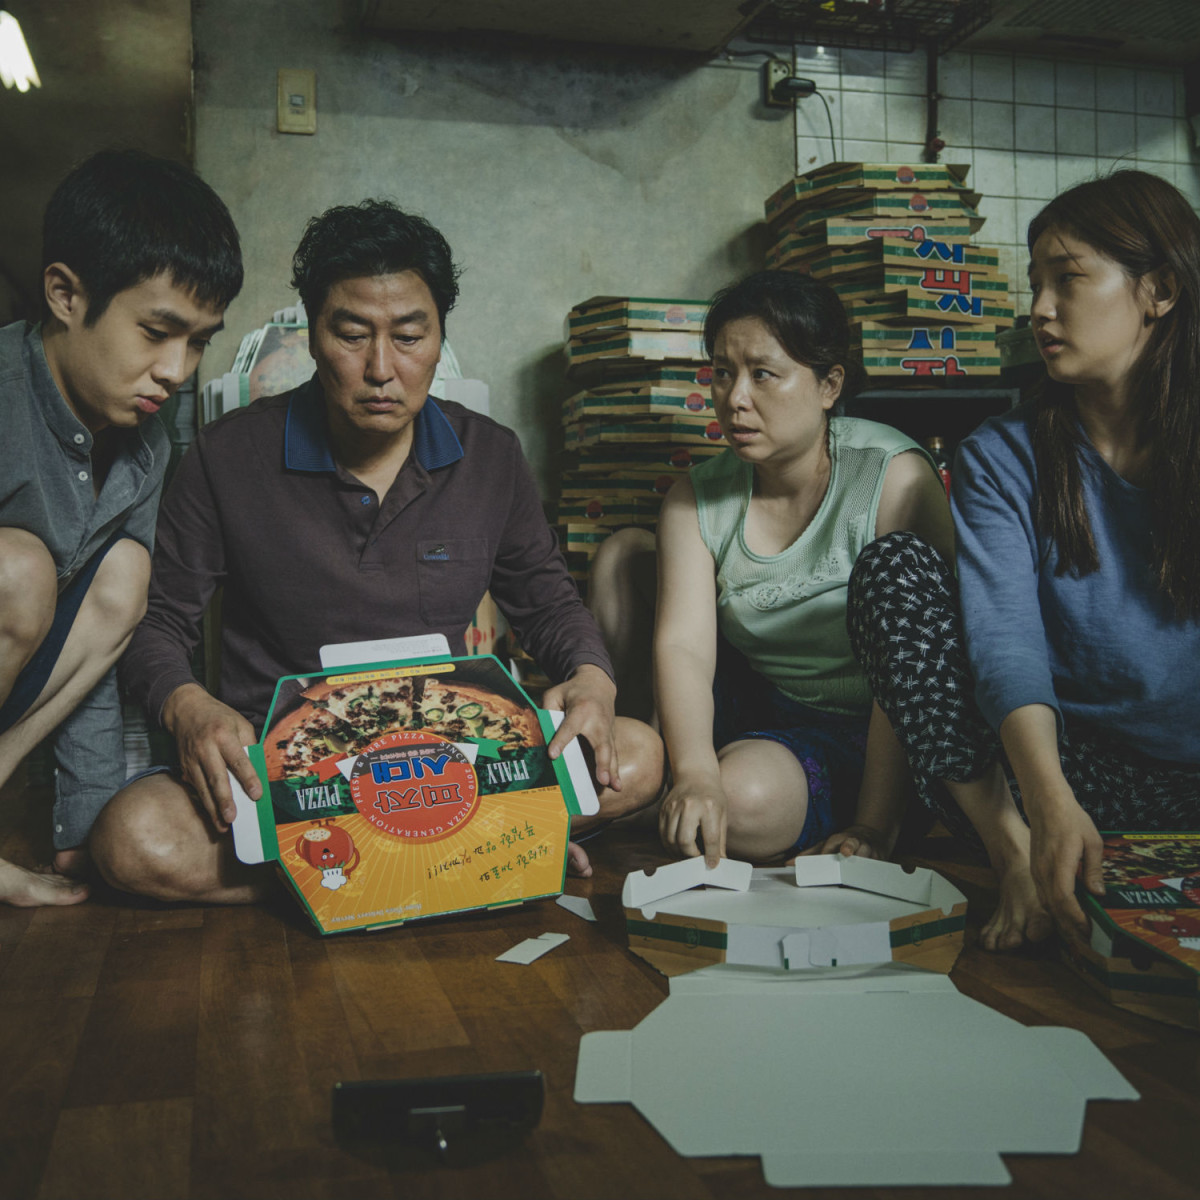 Woo-sik Choi, Kang-ho Song, Hye-jin Jang, and So-dam Park in Parasite